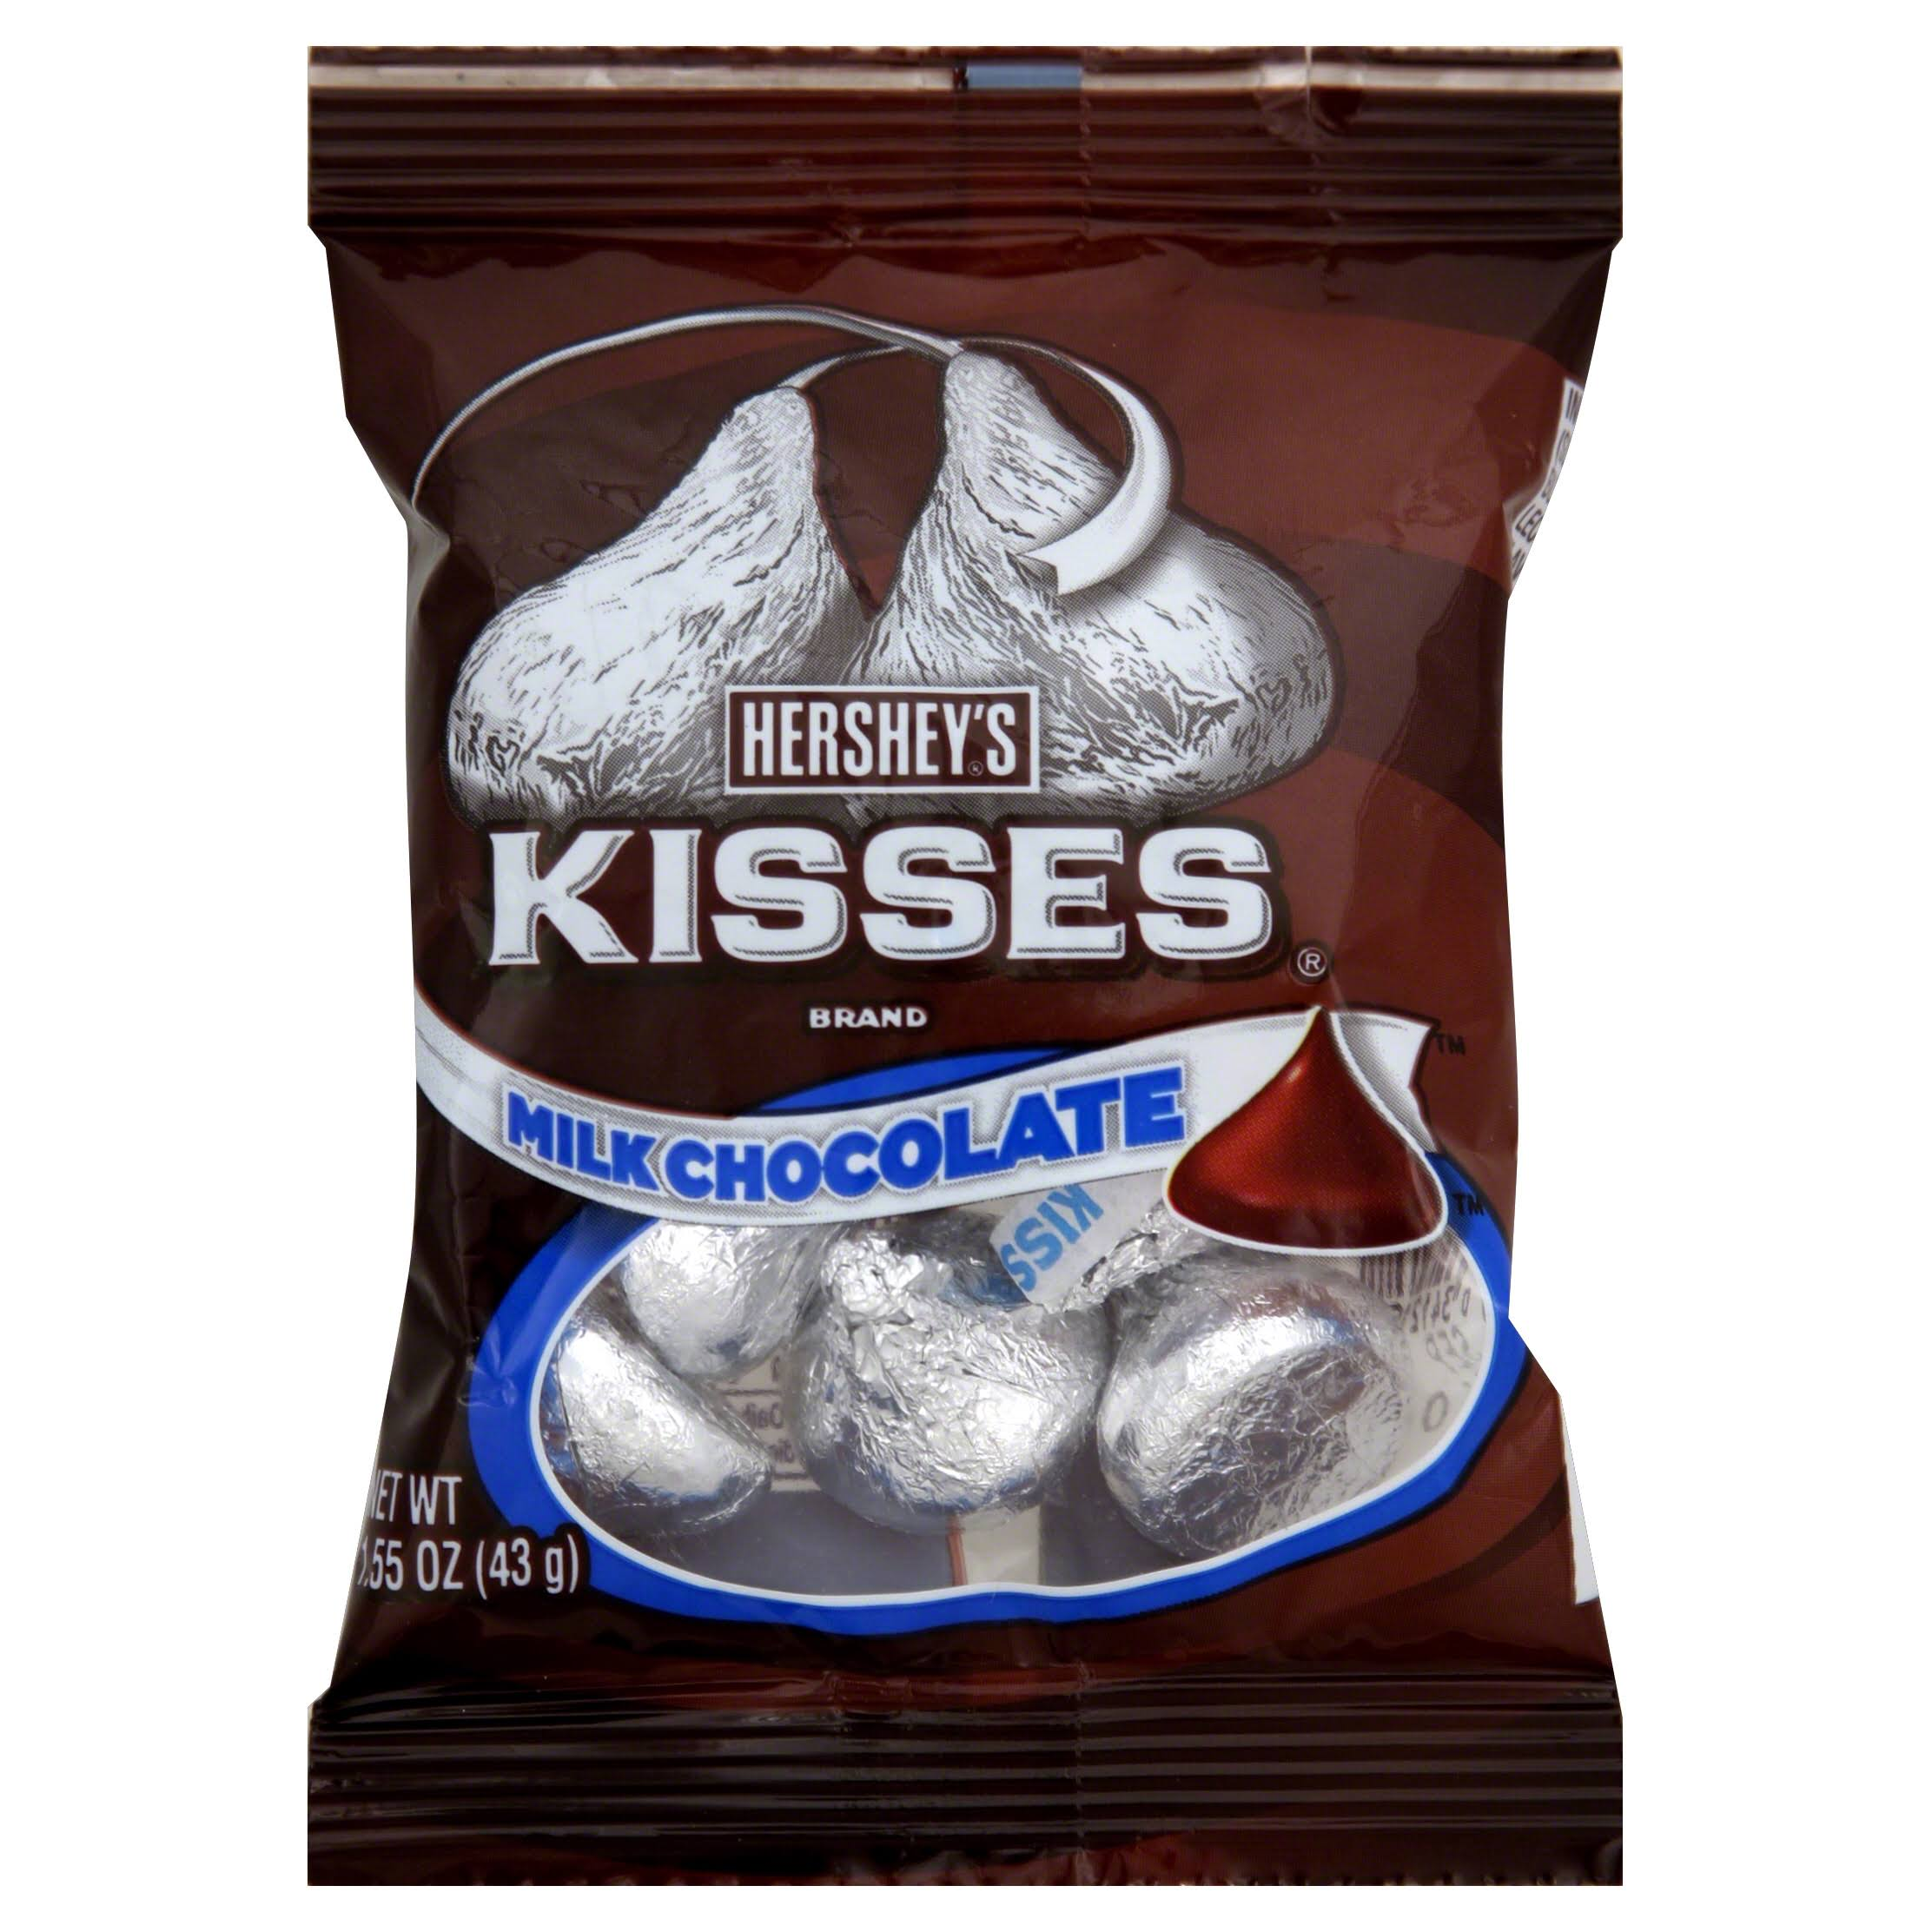 Hershey's Kisses Milk Chocolate - 43g